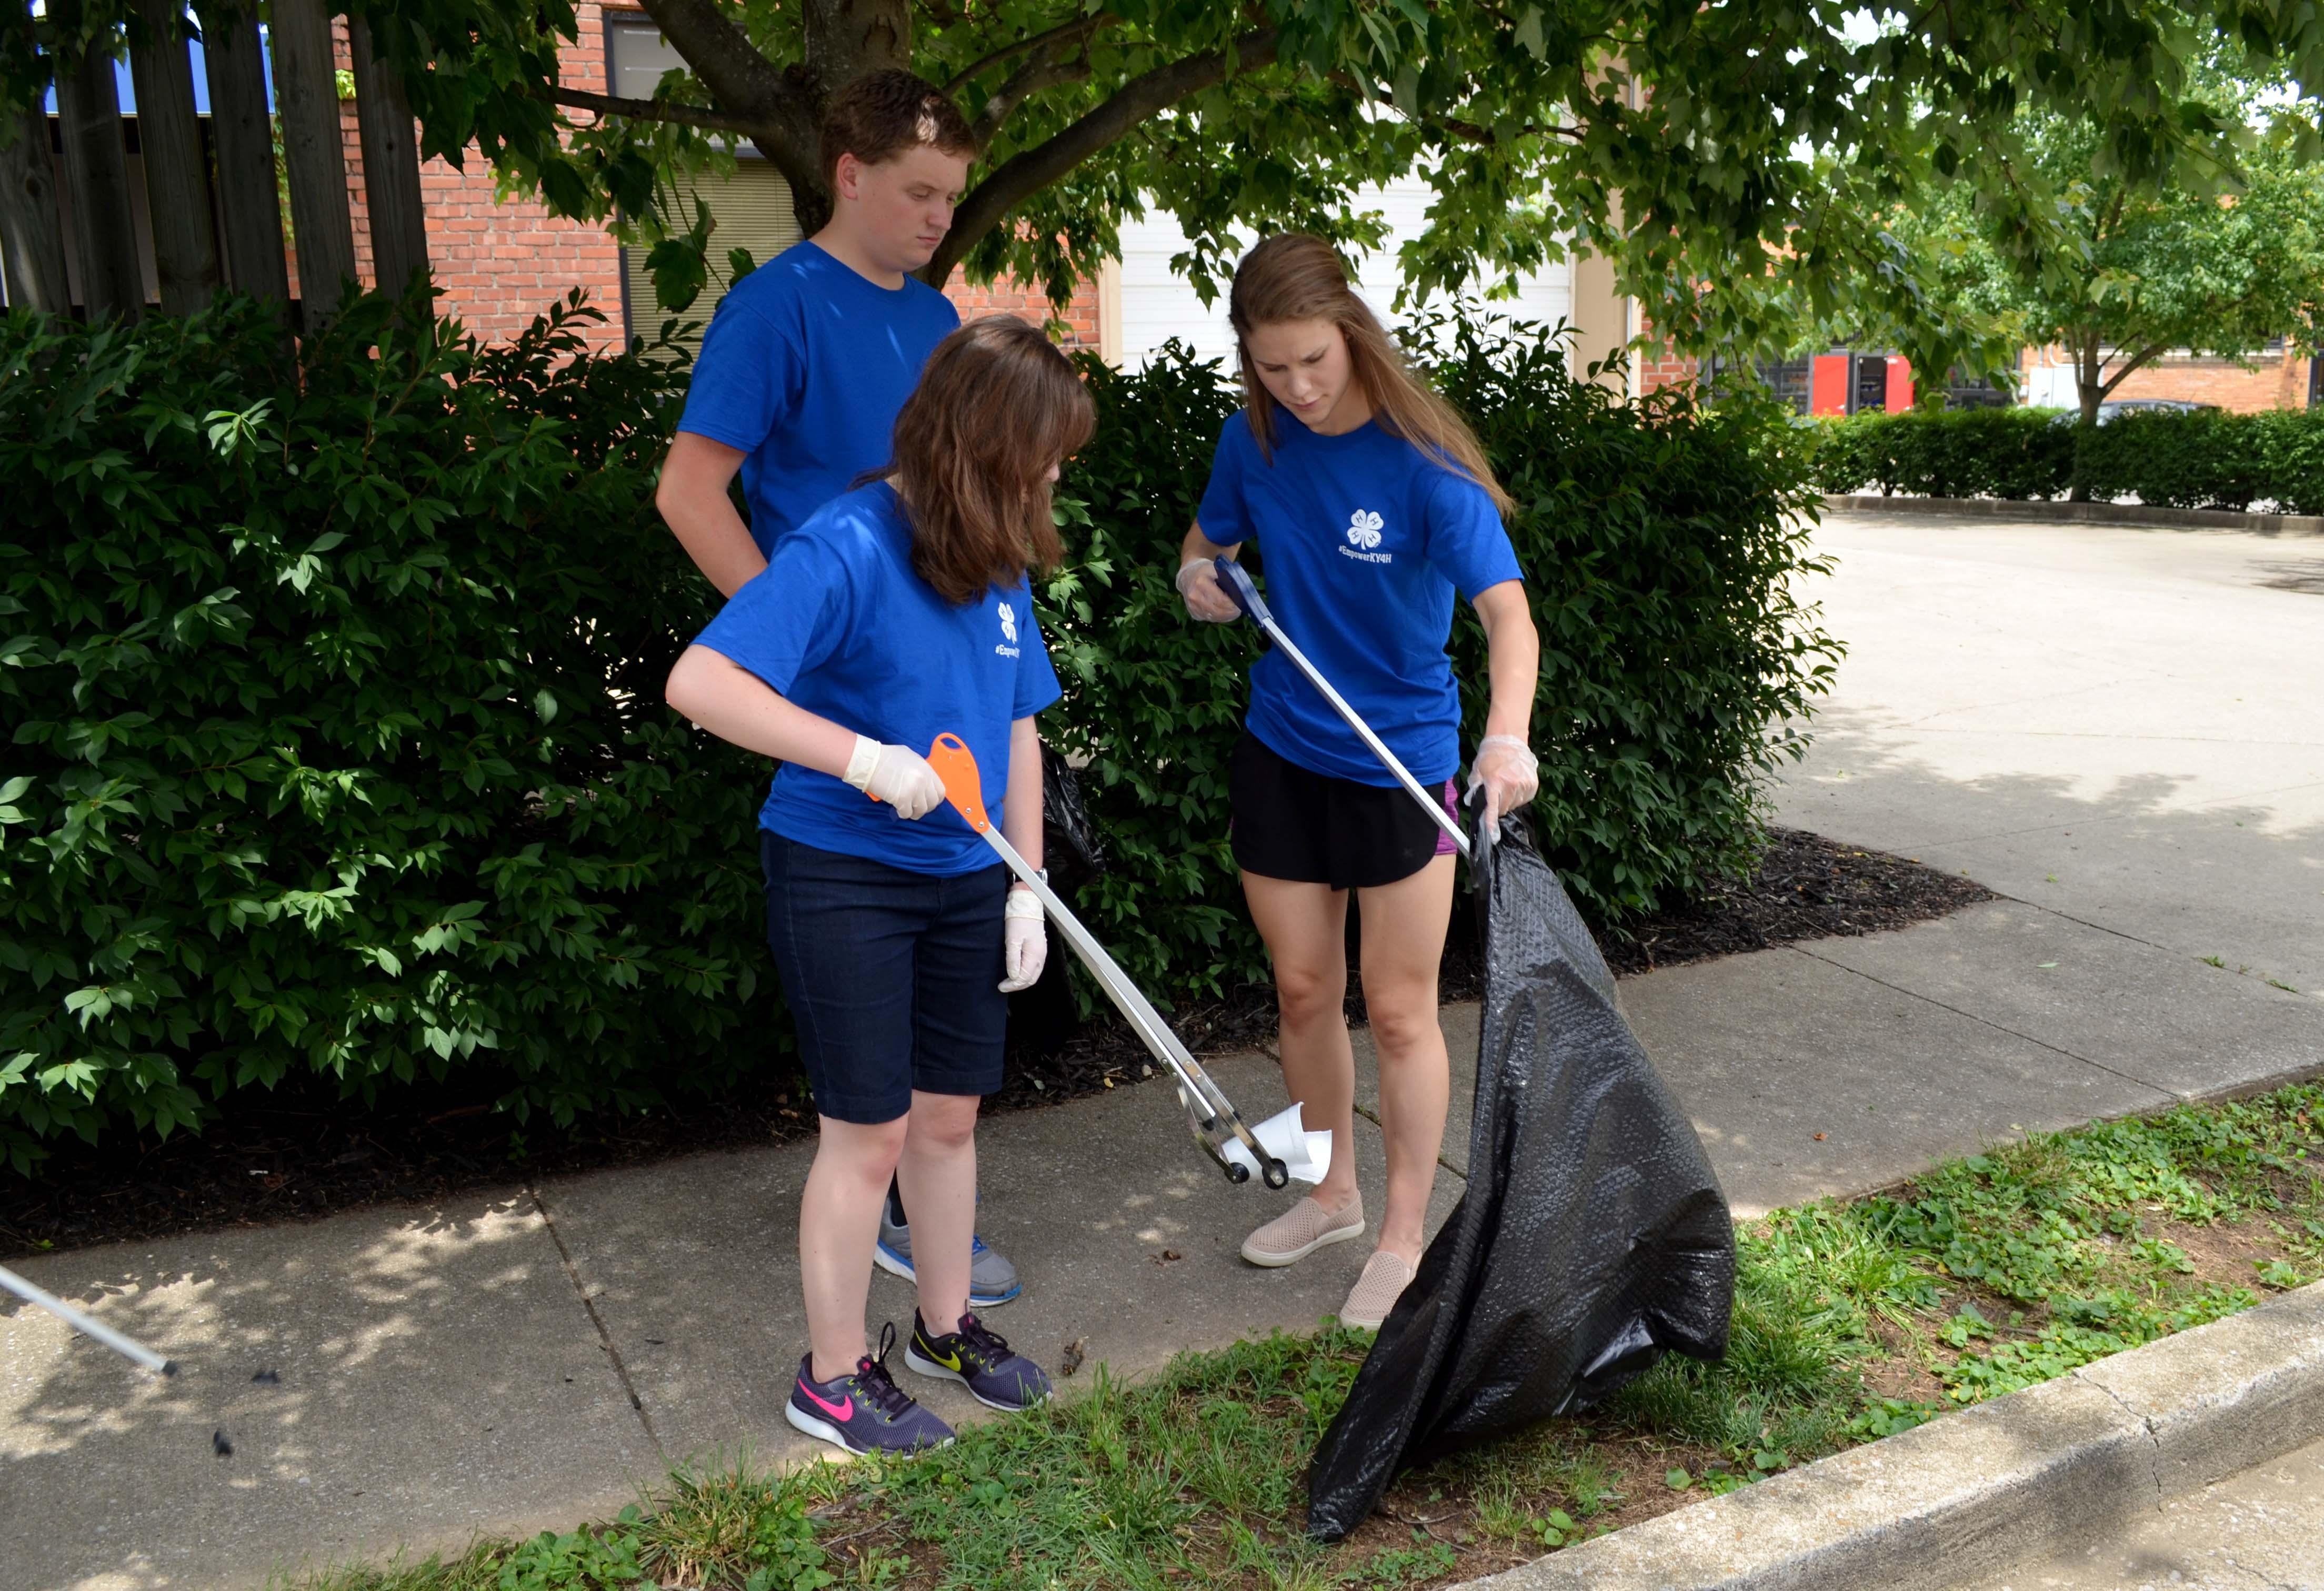 Kentucky 4-H'ers pick up litter in a Lexington community as part of their community service project at 4-H Teen Conference.